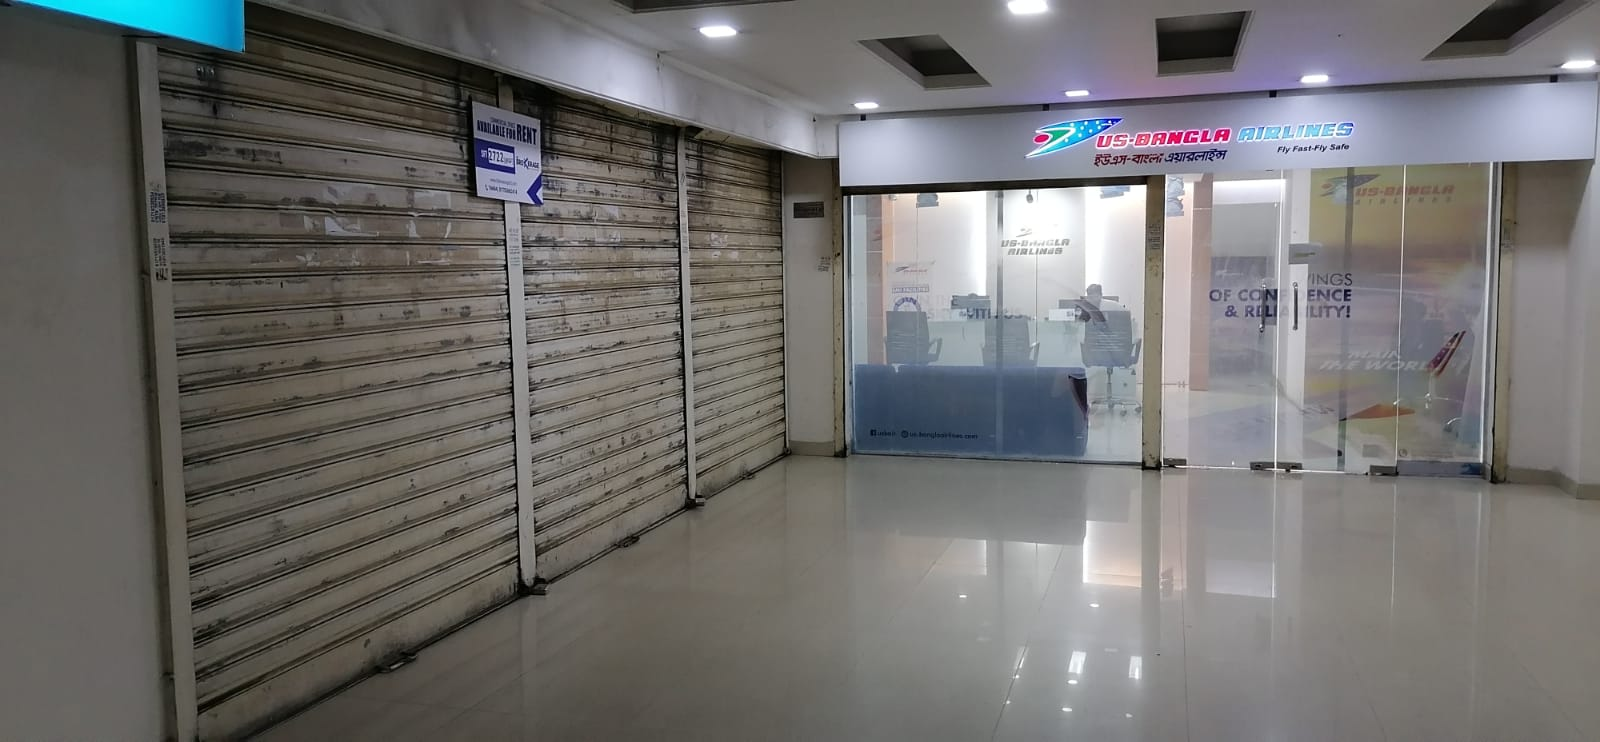 2722-sft-commercial-space-for-rent-in-banglamotor-ground-floor-768948